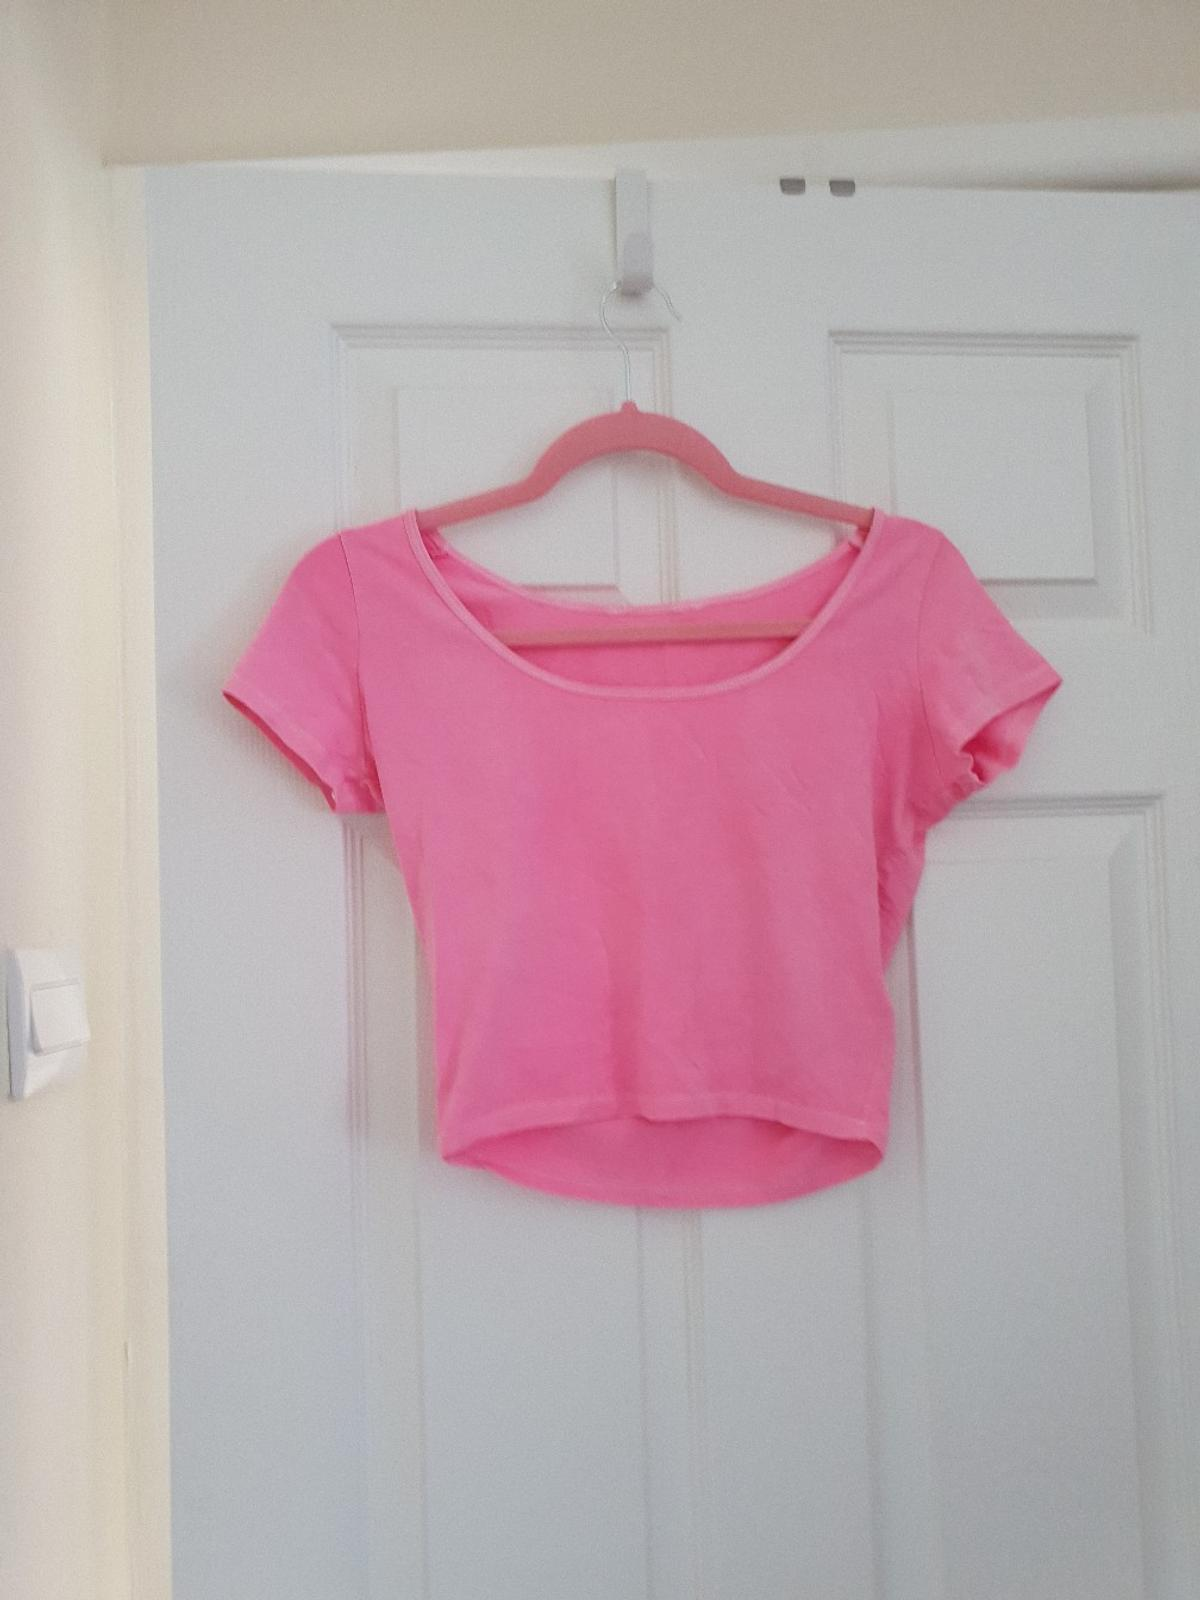 Size 8 pink crop top from New Look. Collection only from Aldridge WS9.